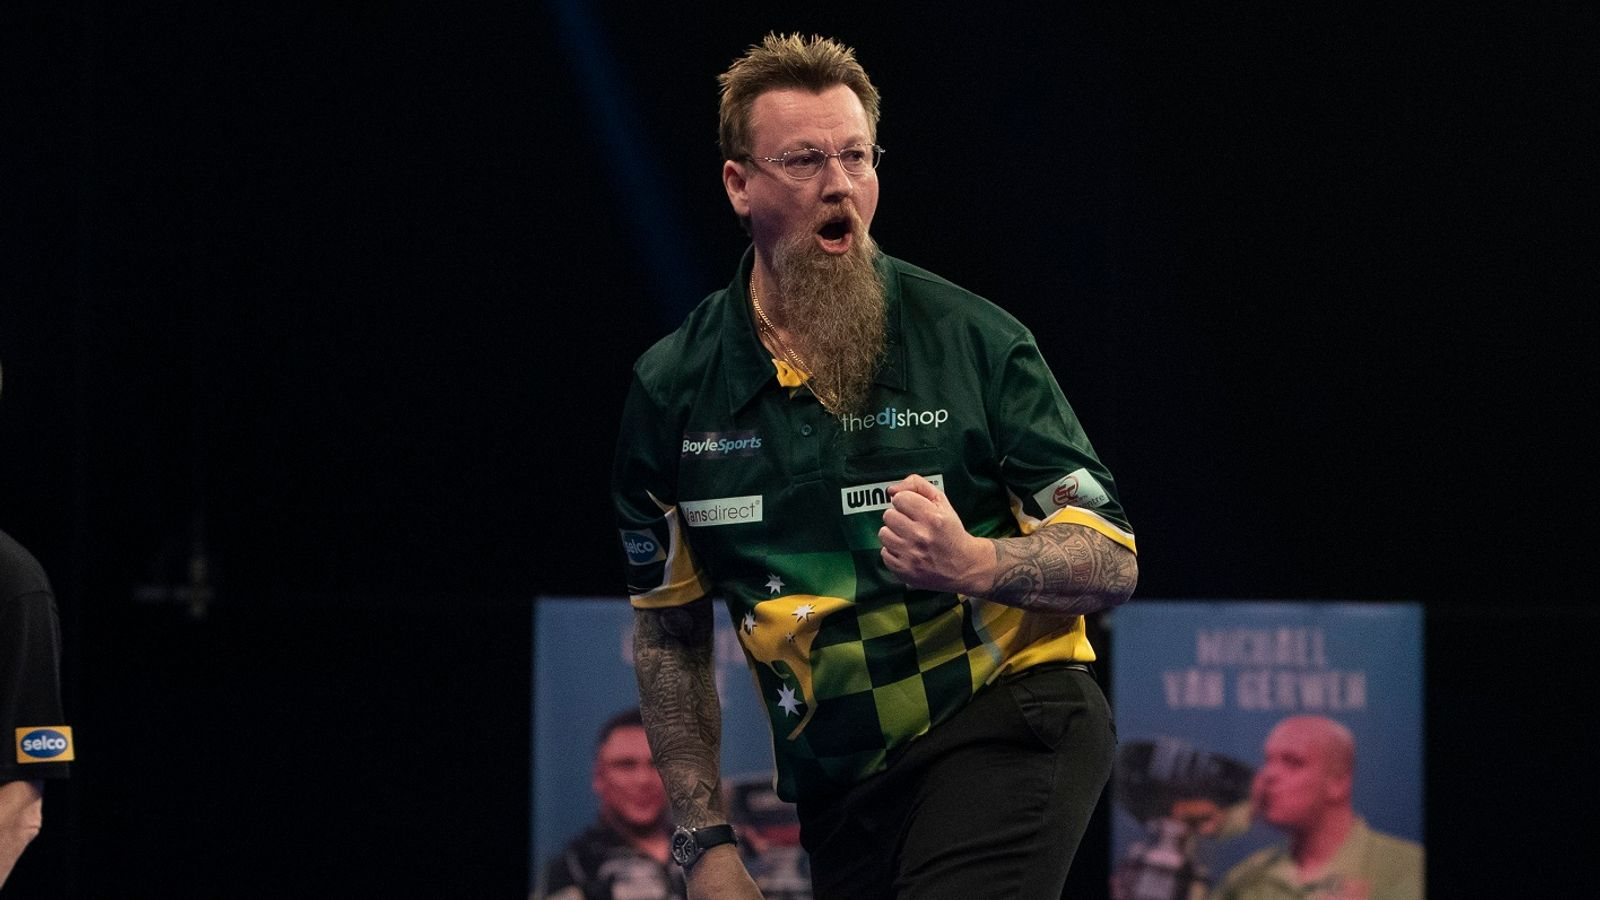 Simon Whitlock reflects on his resurgence ahead of Grand Slam showdown with Michael van Gerwen